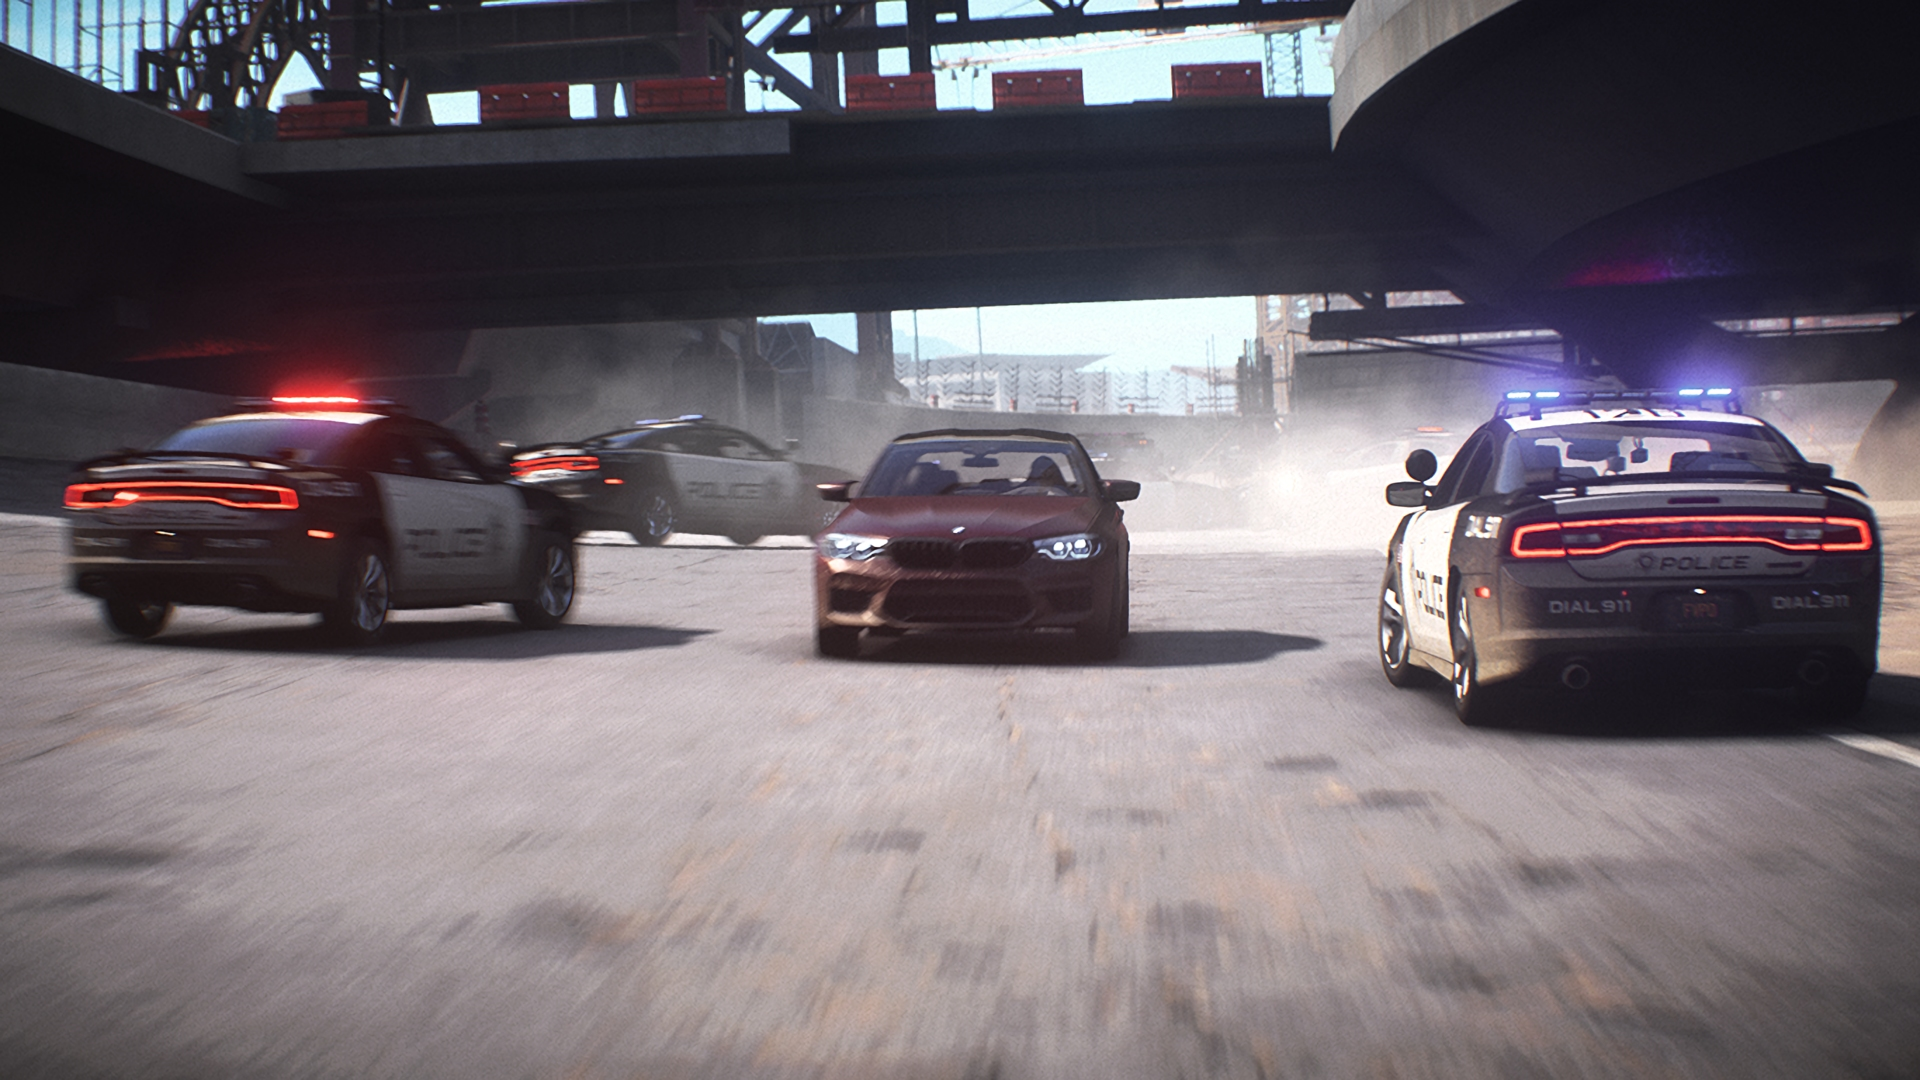 Need for Speed Payback [Video Game] Wallpaper HD 1920x1080